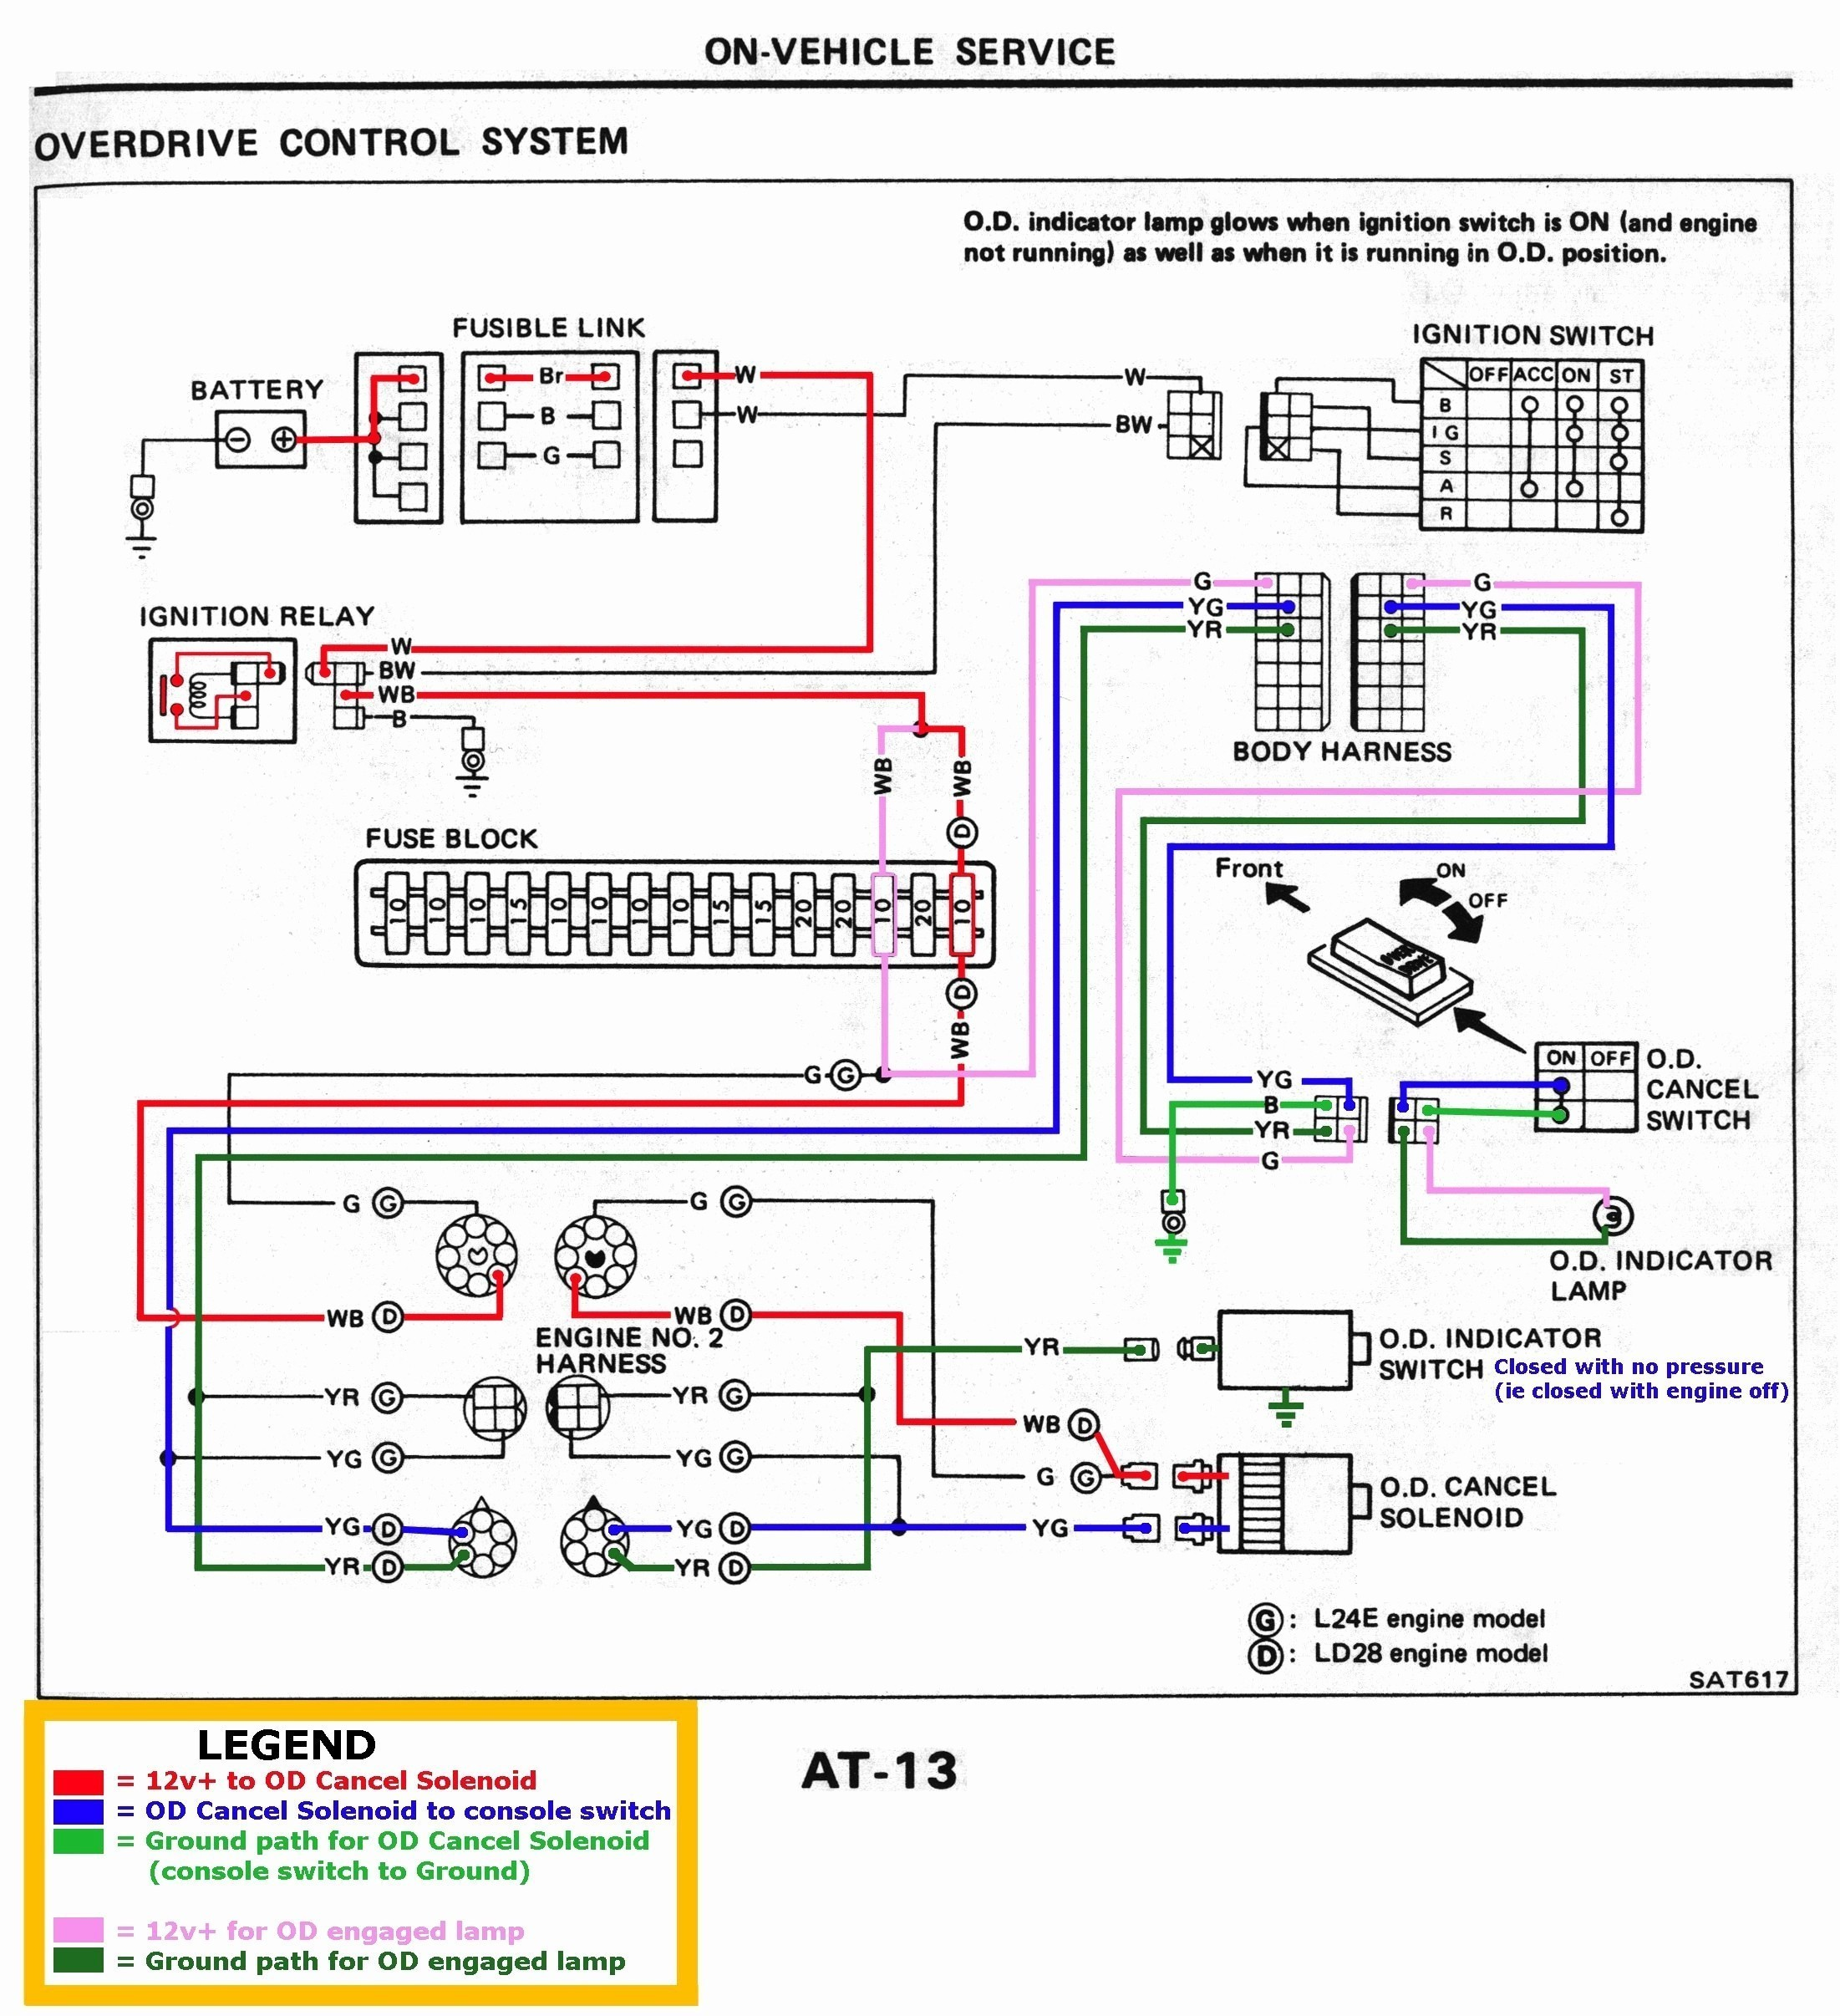 Kawasaki Bayou 220 Engine Diagram Wiring Diagram Kawasaki Bayou 220 Archives Feefee Save Wiring Of Kawasaki Bayou 220 Engine Diagram Wiring Diagram Archives Page 69 Of 71 Balnearios